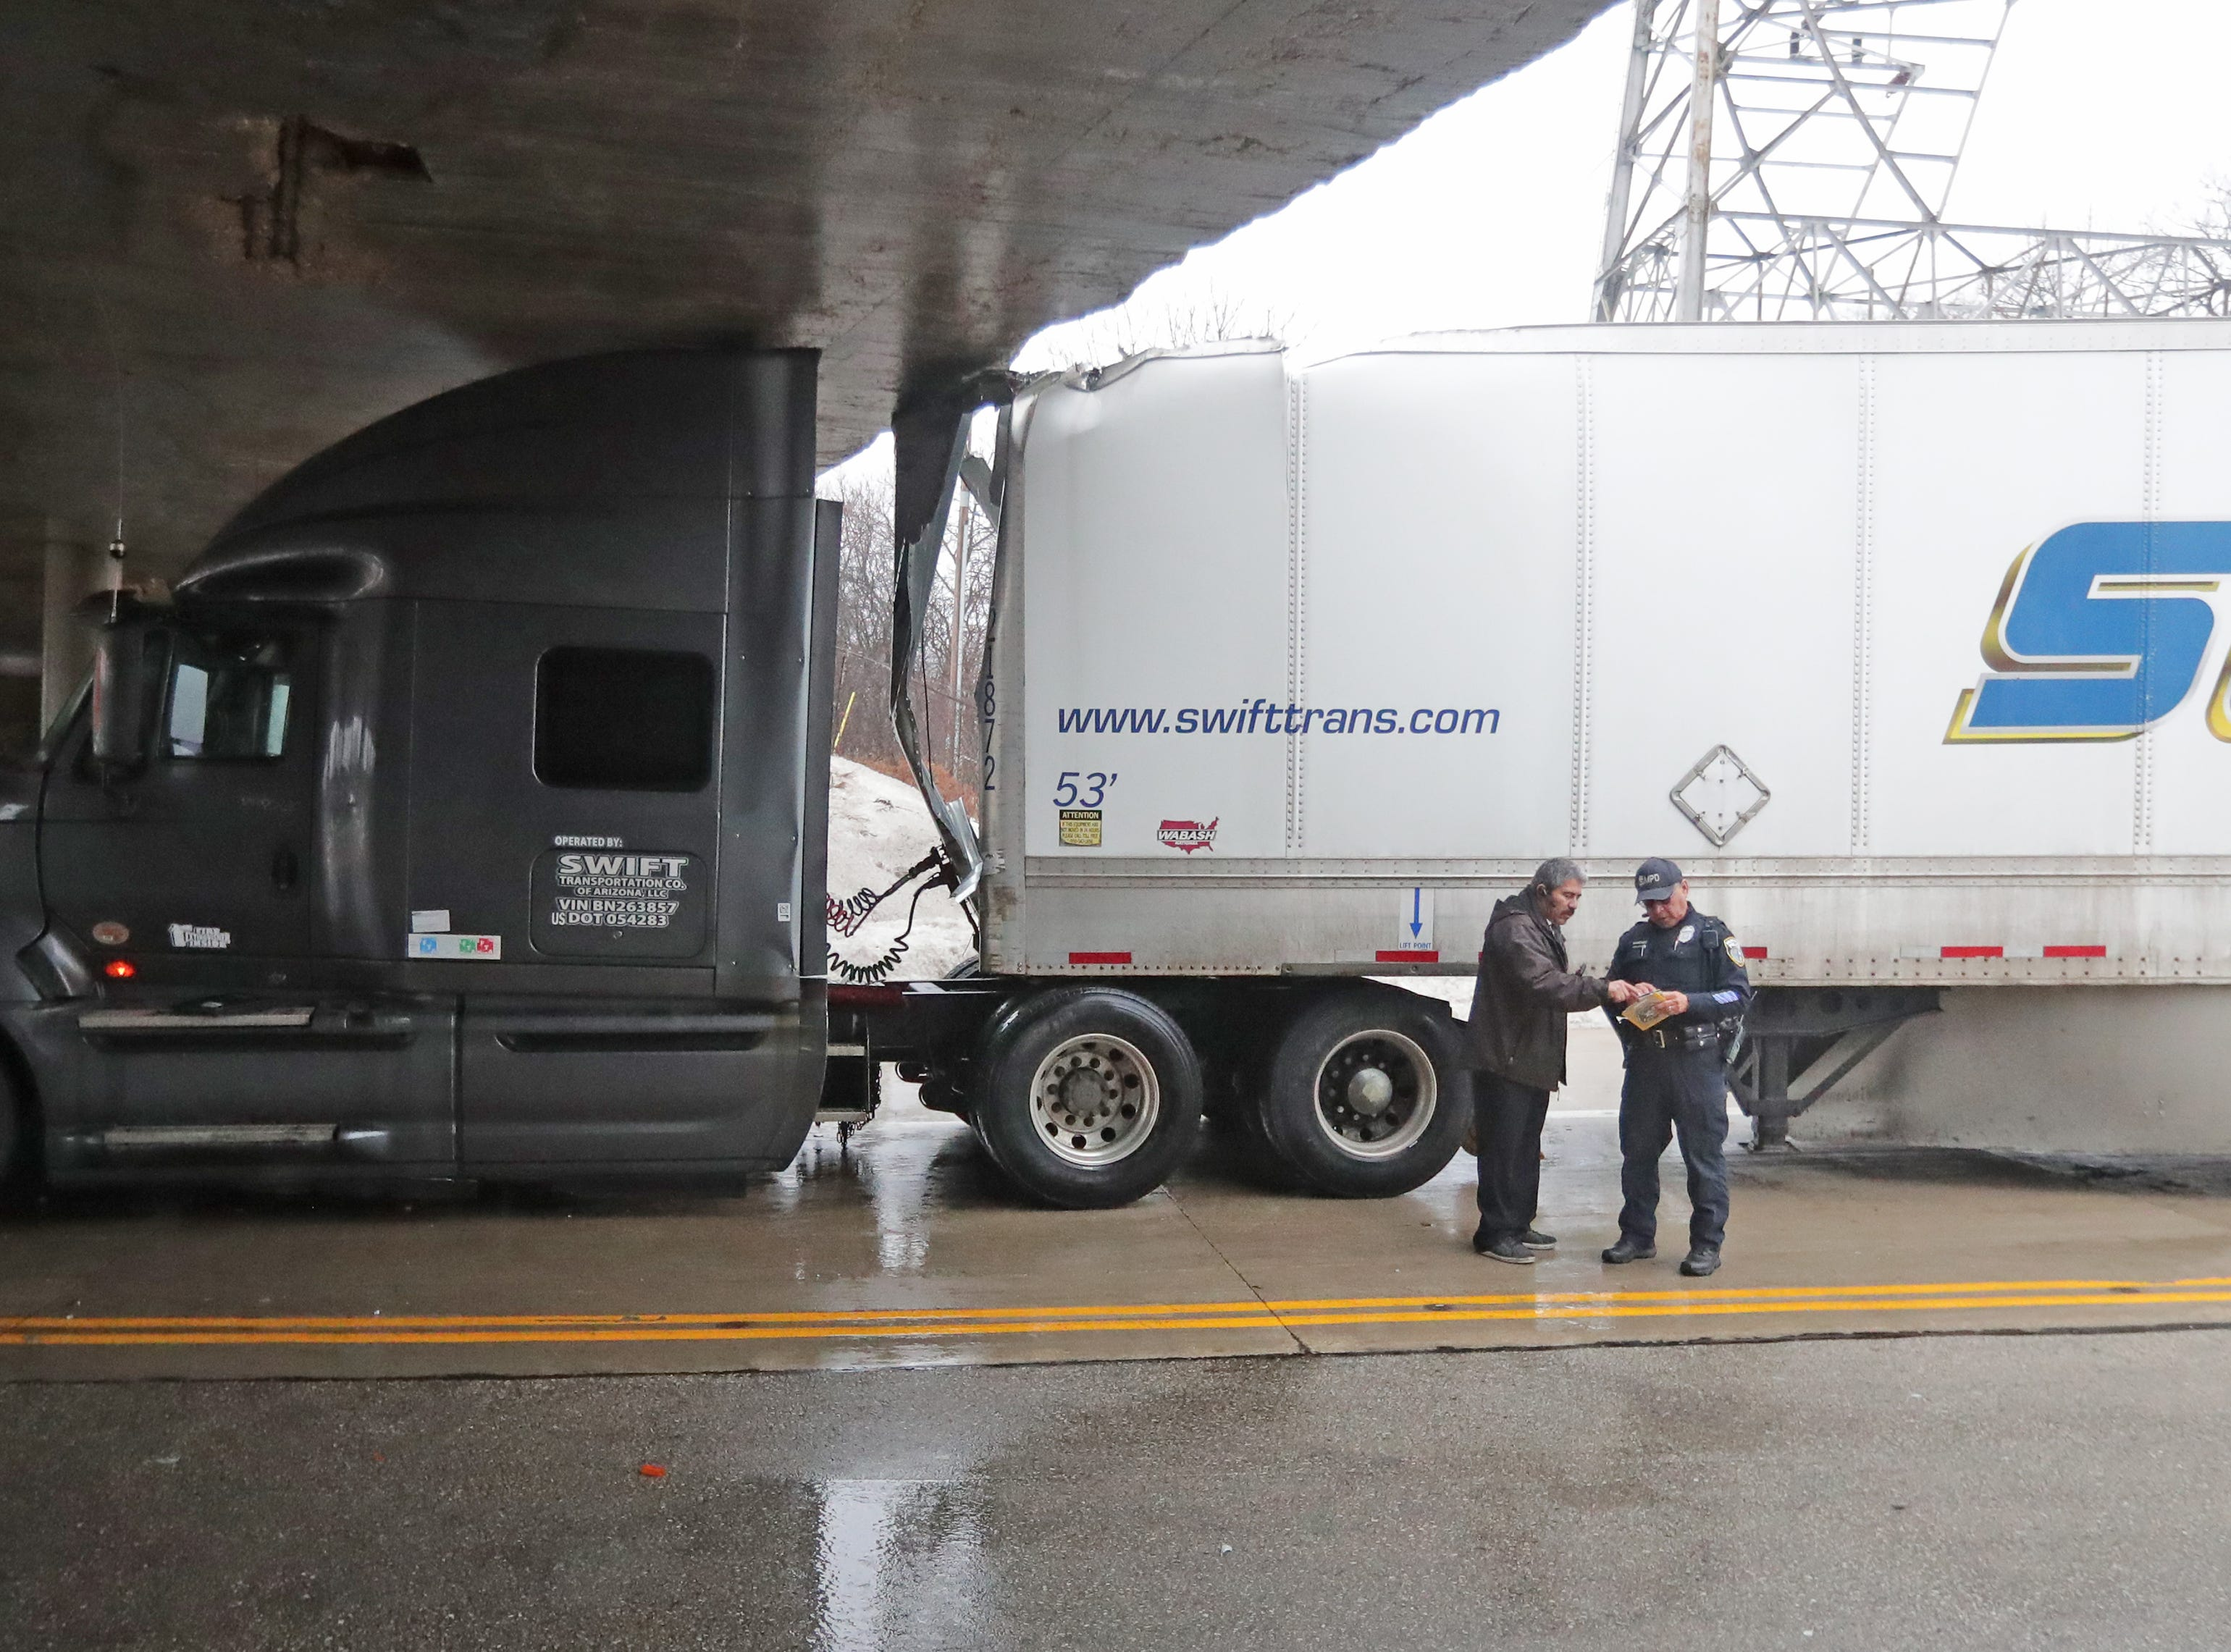 A truck driver talks to a Milwaukee Police officer as his semi truck is stuck.